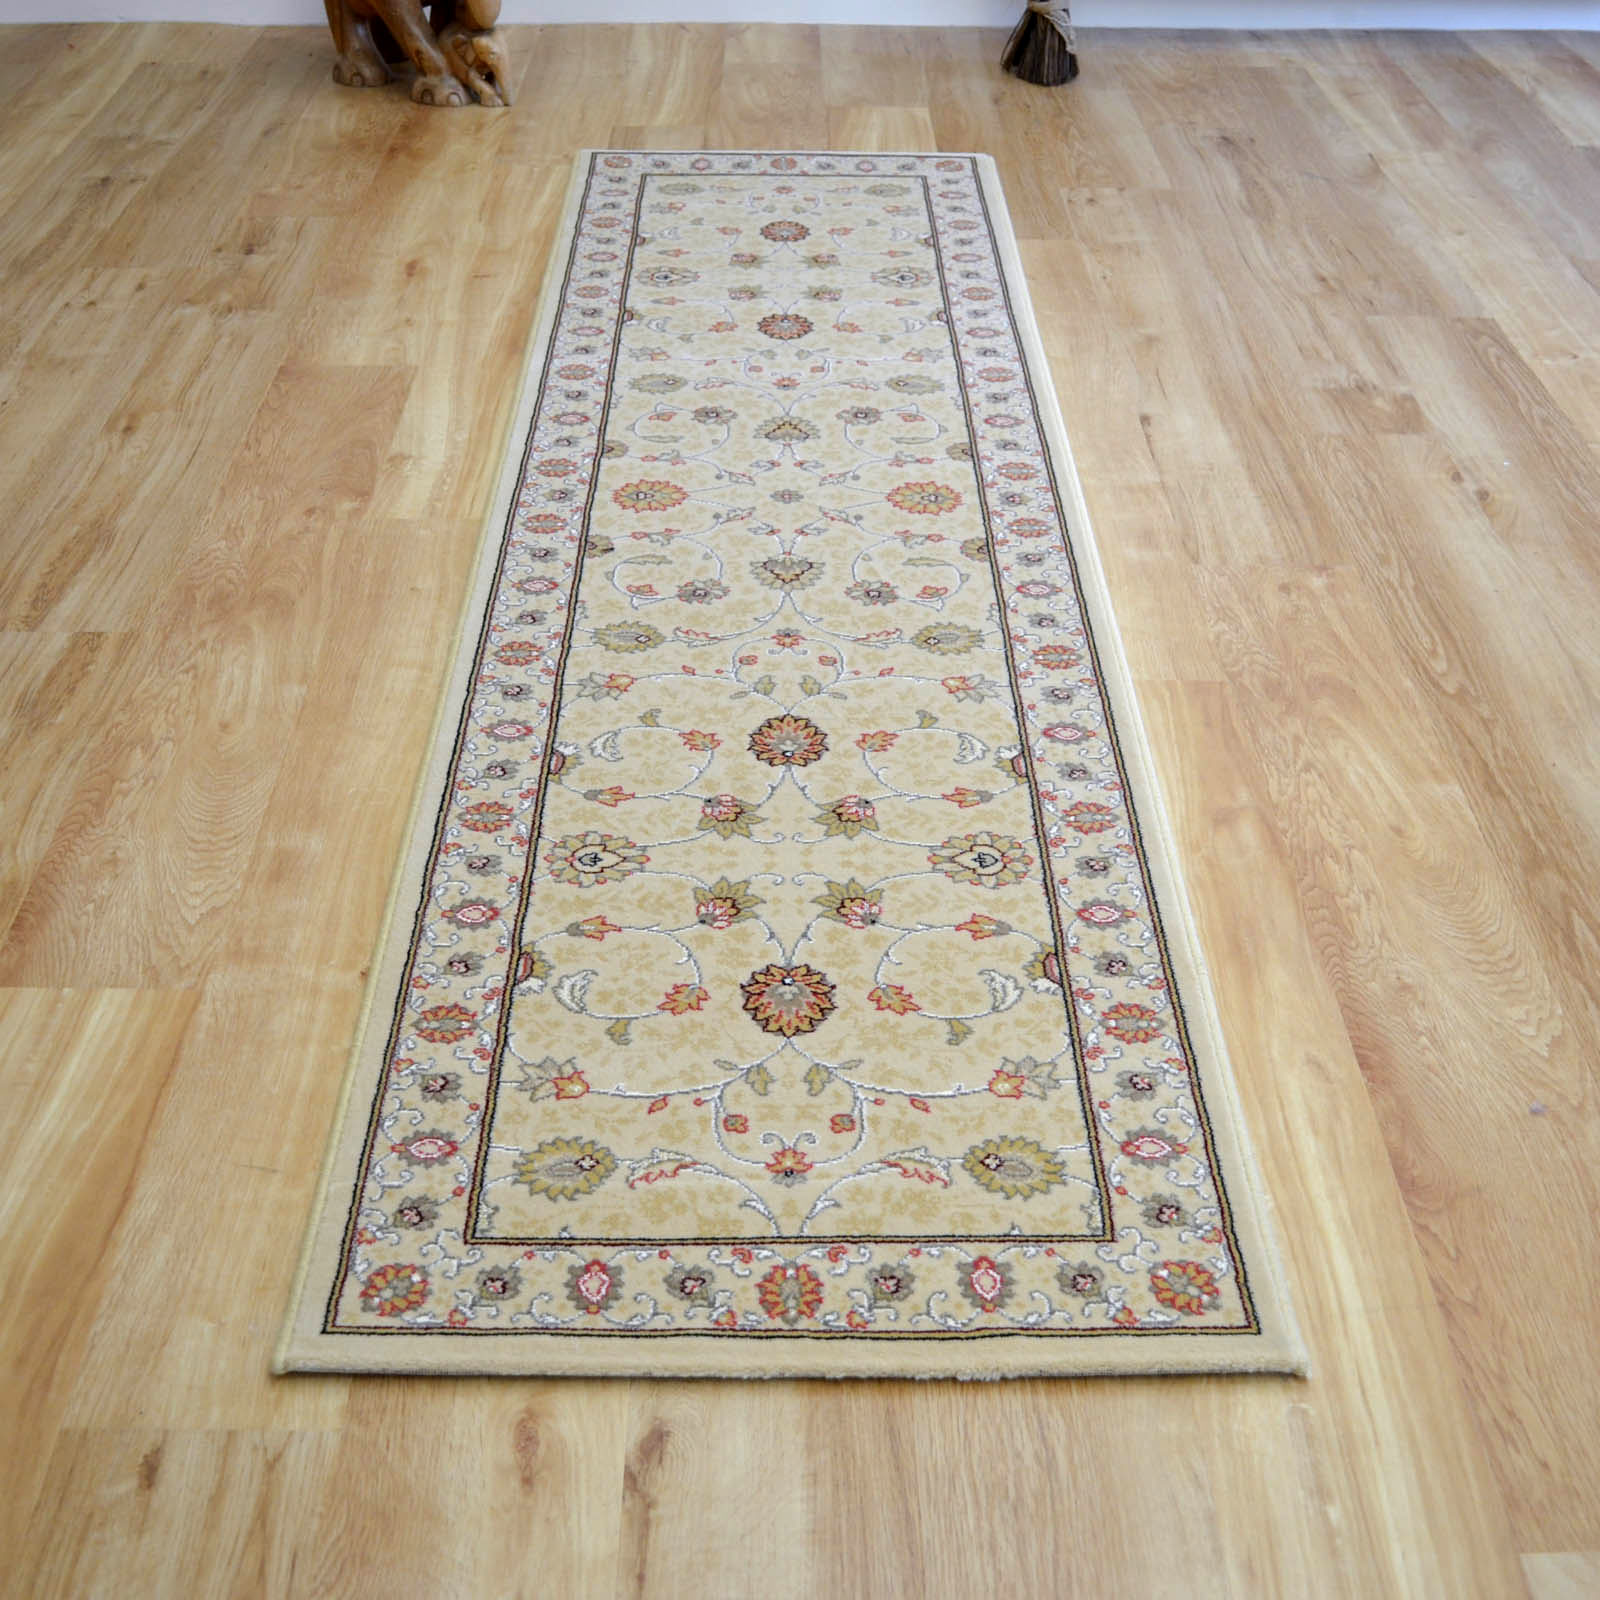 Noble Art Hall Runners 6529 190 in Cream